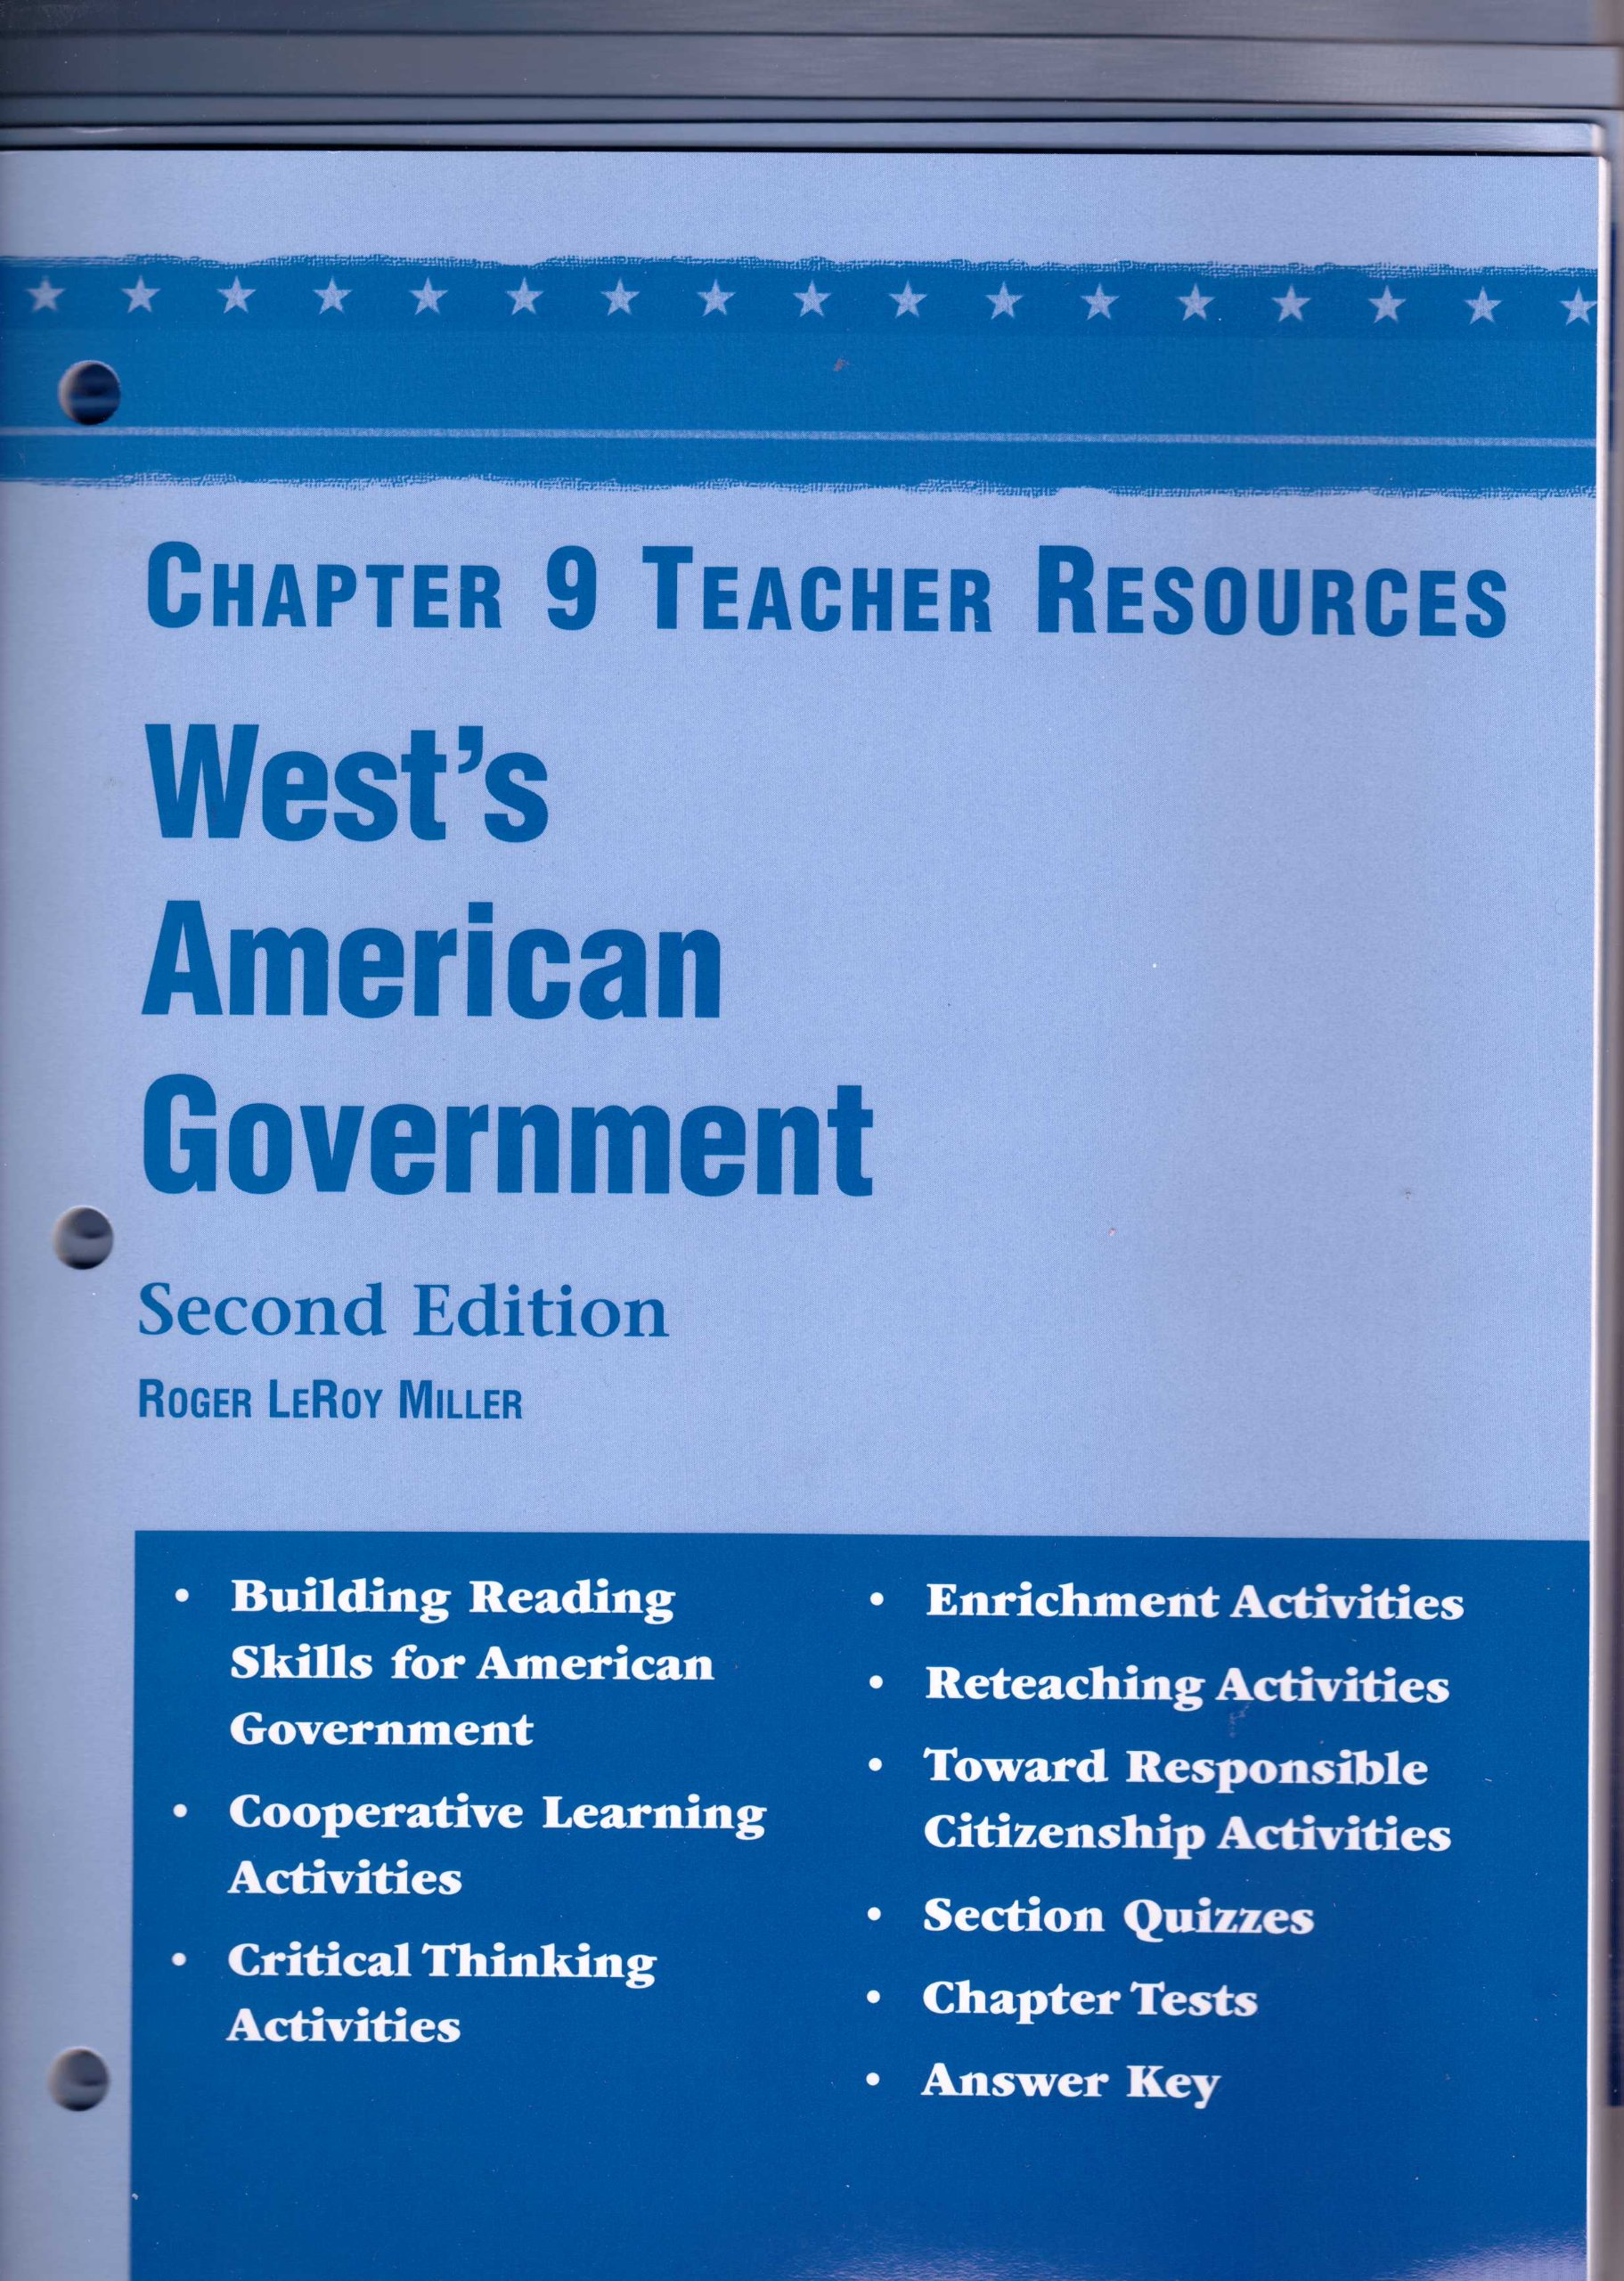 West's American Government, 2nd ed , TEACHER RESOURCES, Unit